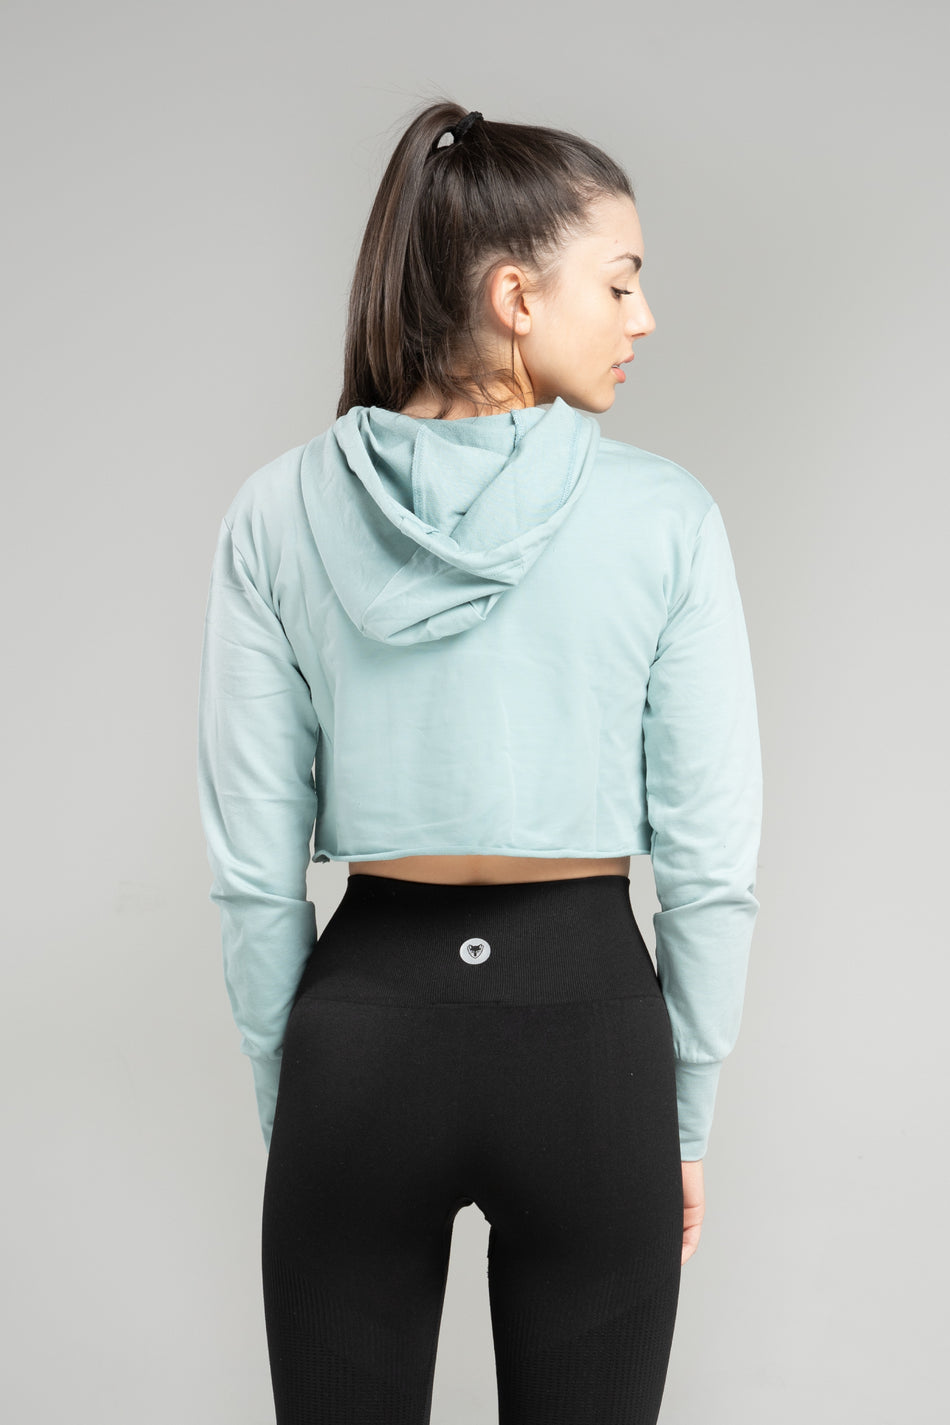 Cute N Cropped Hoodie - Mint Fade - WearWolf Clothing Ltd